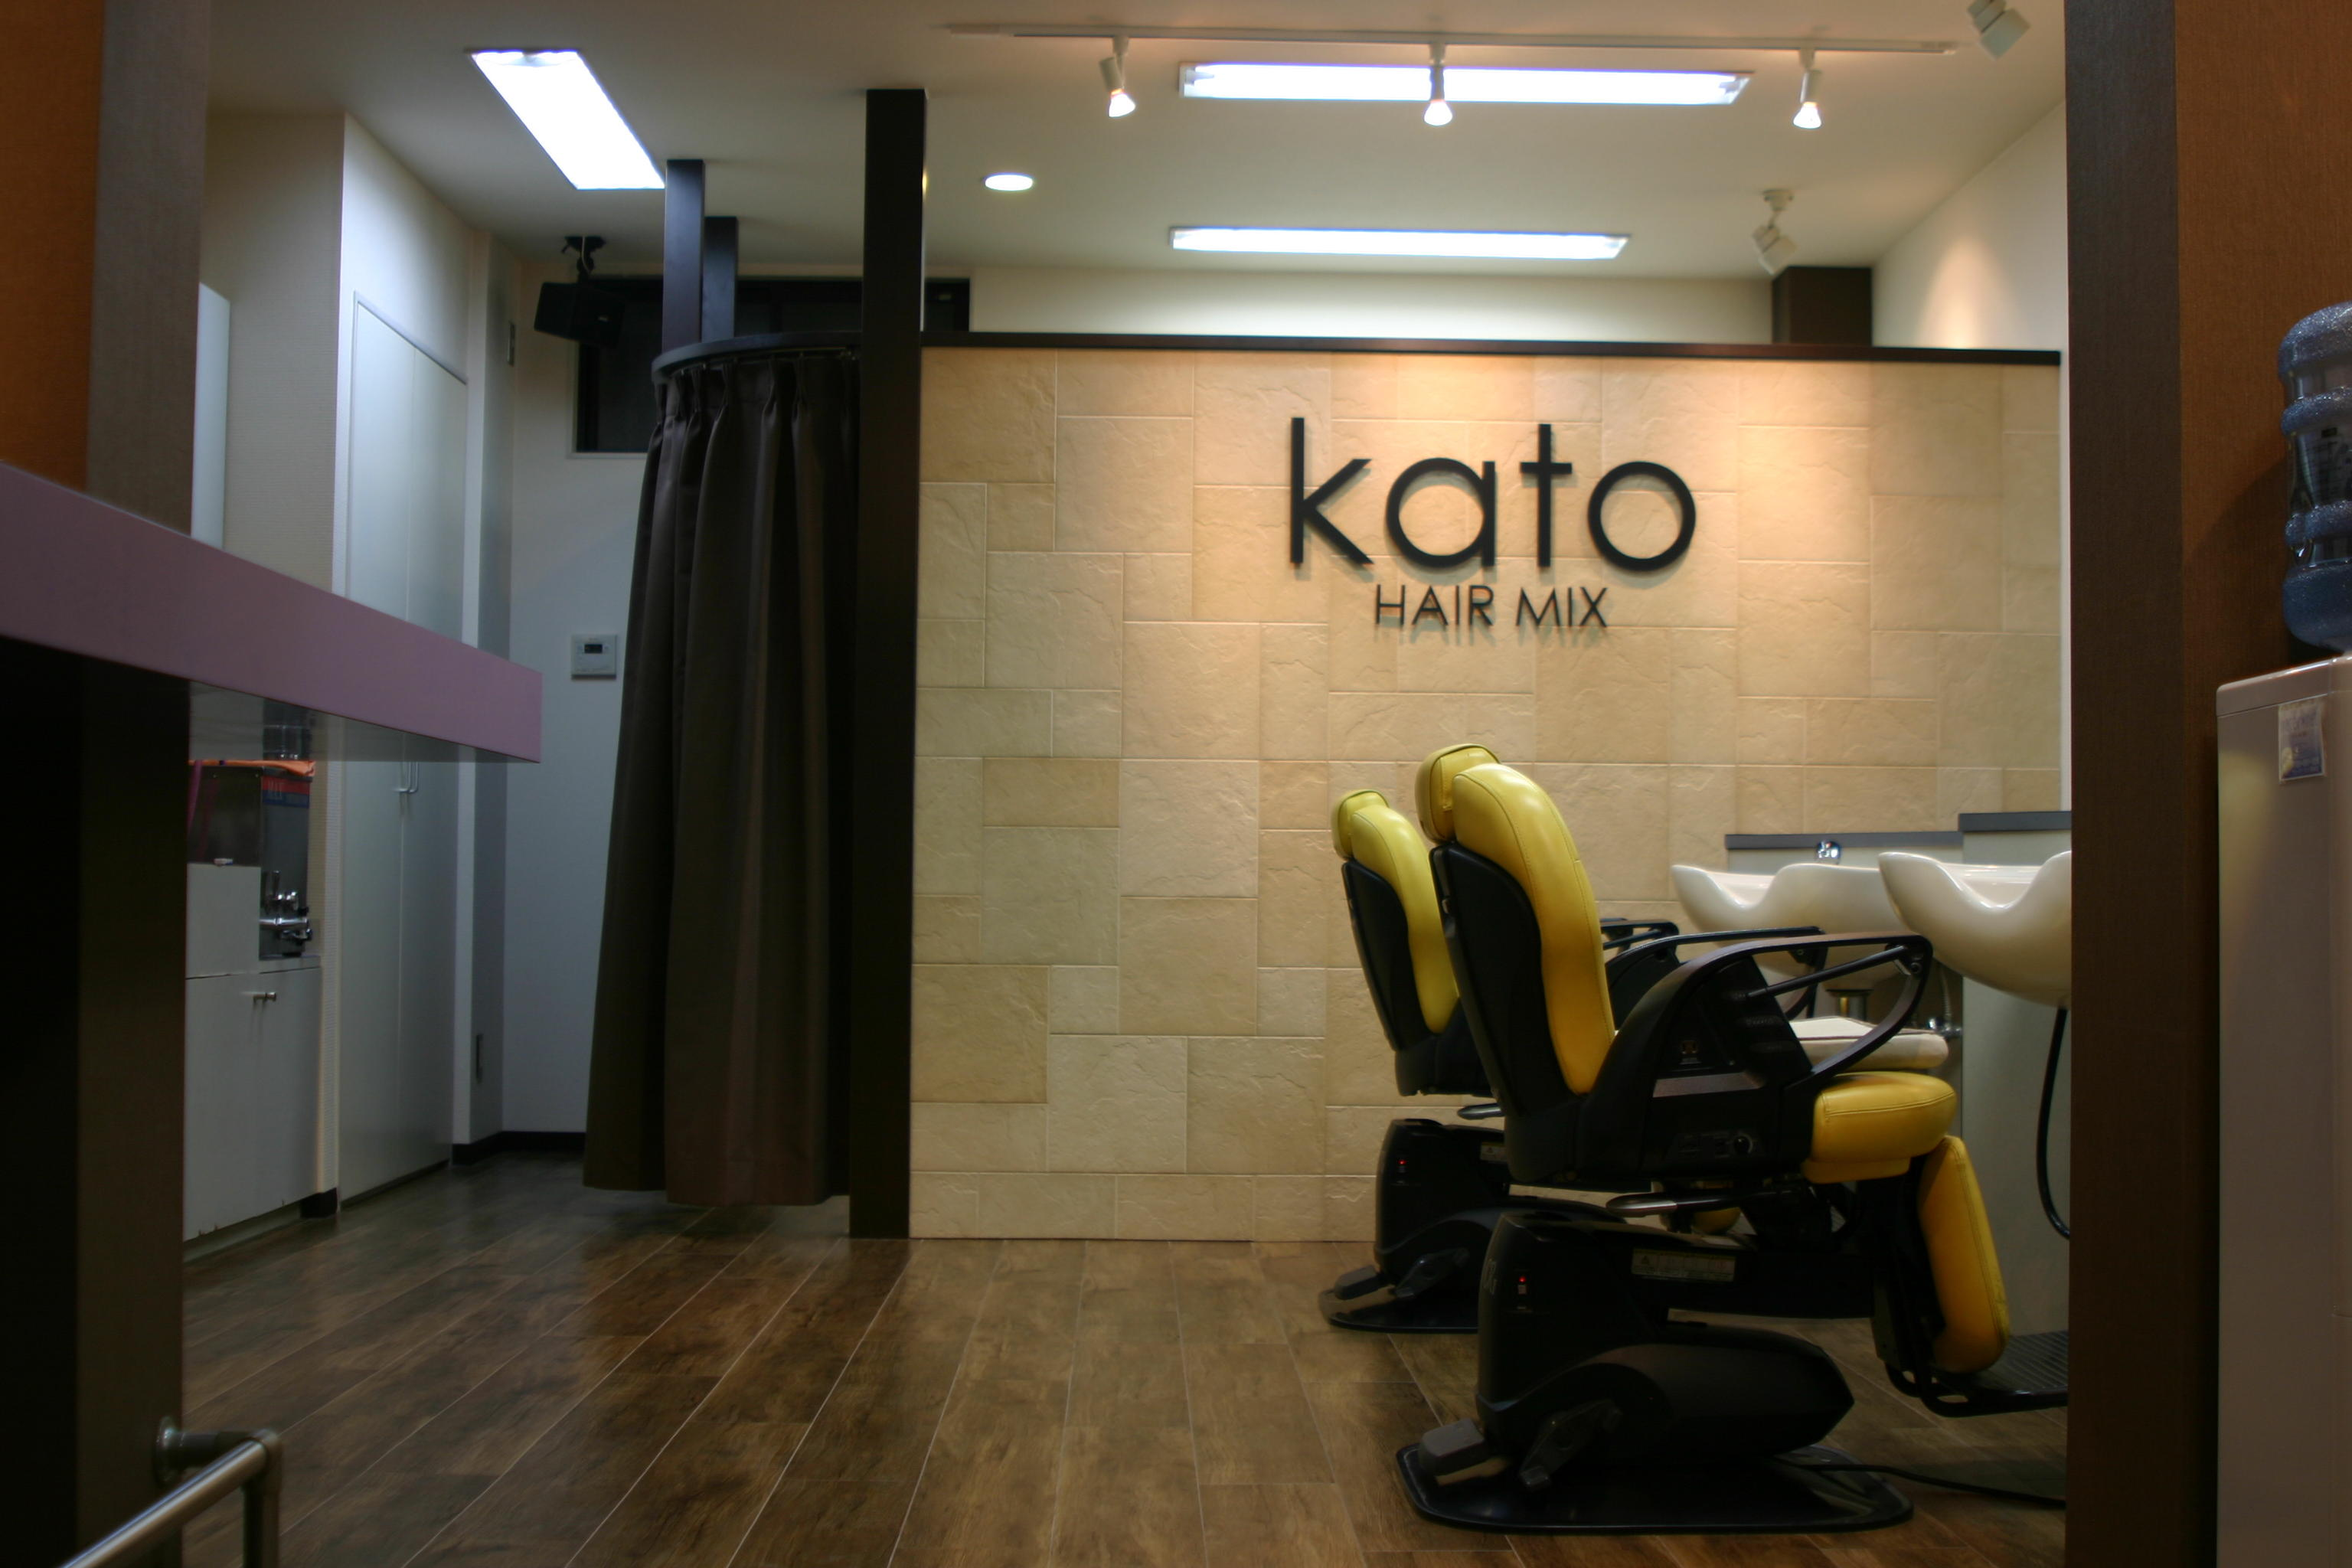 HAIR-MIX KATO